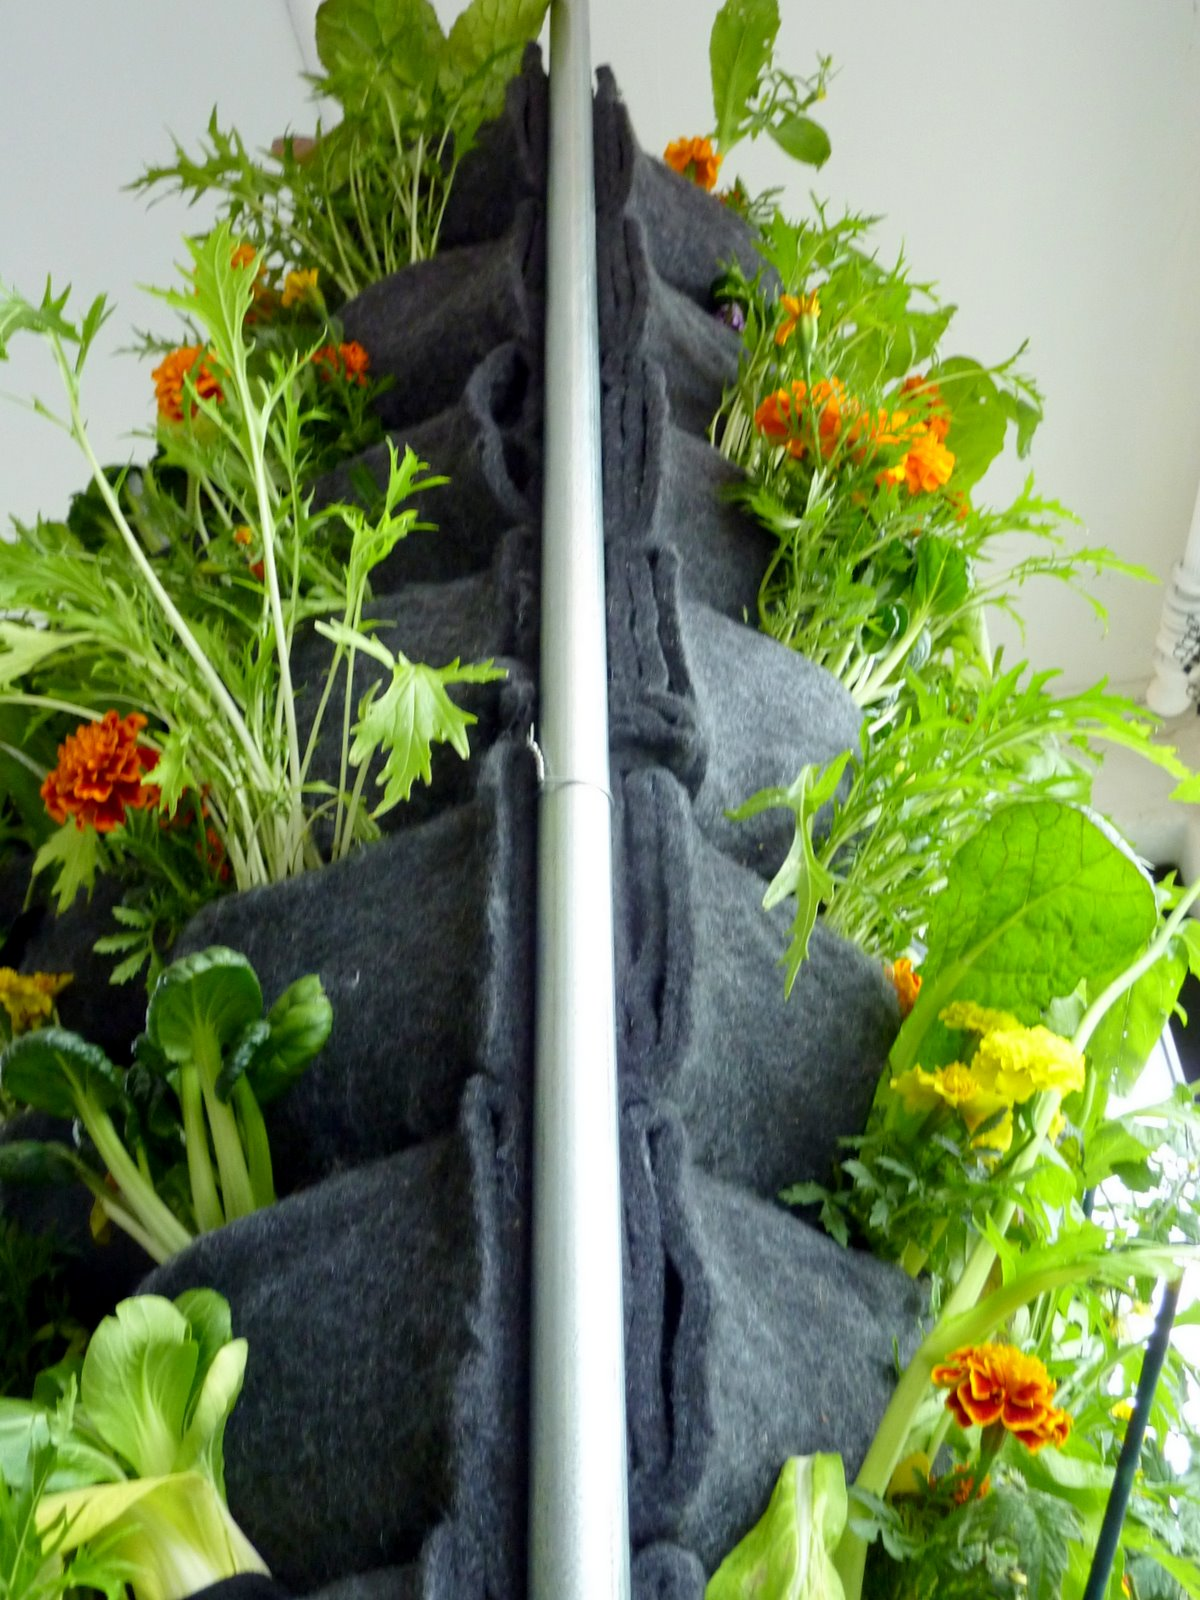 Aquaponic Vertical Vegetable Garden Plants On Walls